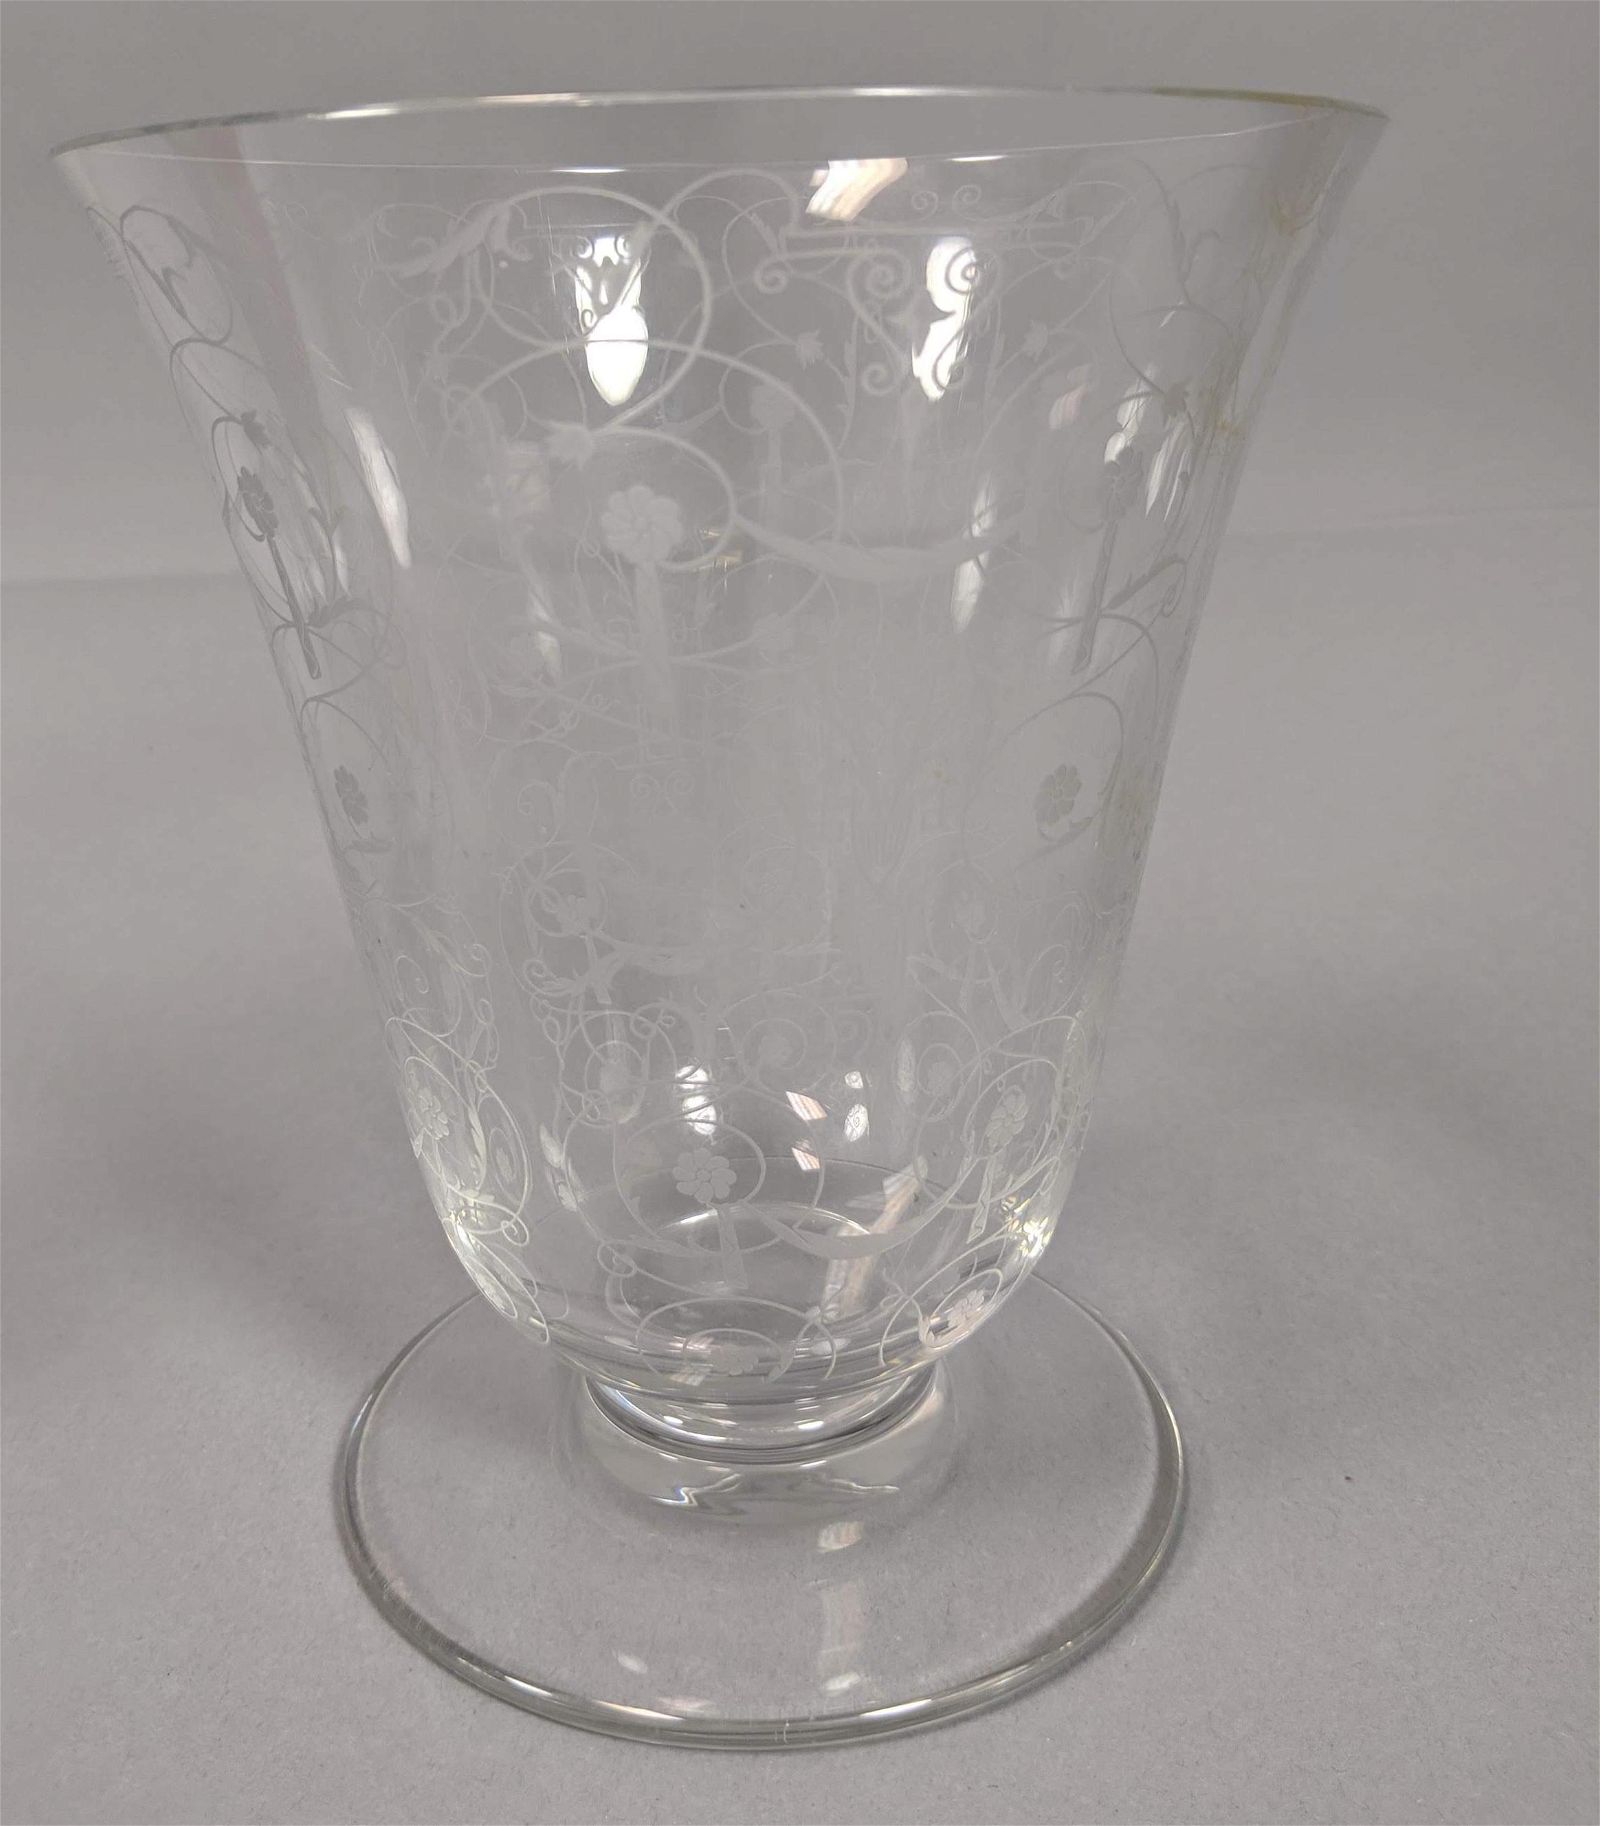 BACCARAT French Crystal Trumpet Vase. Flared clea